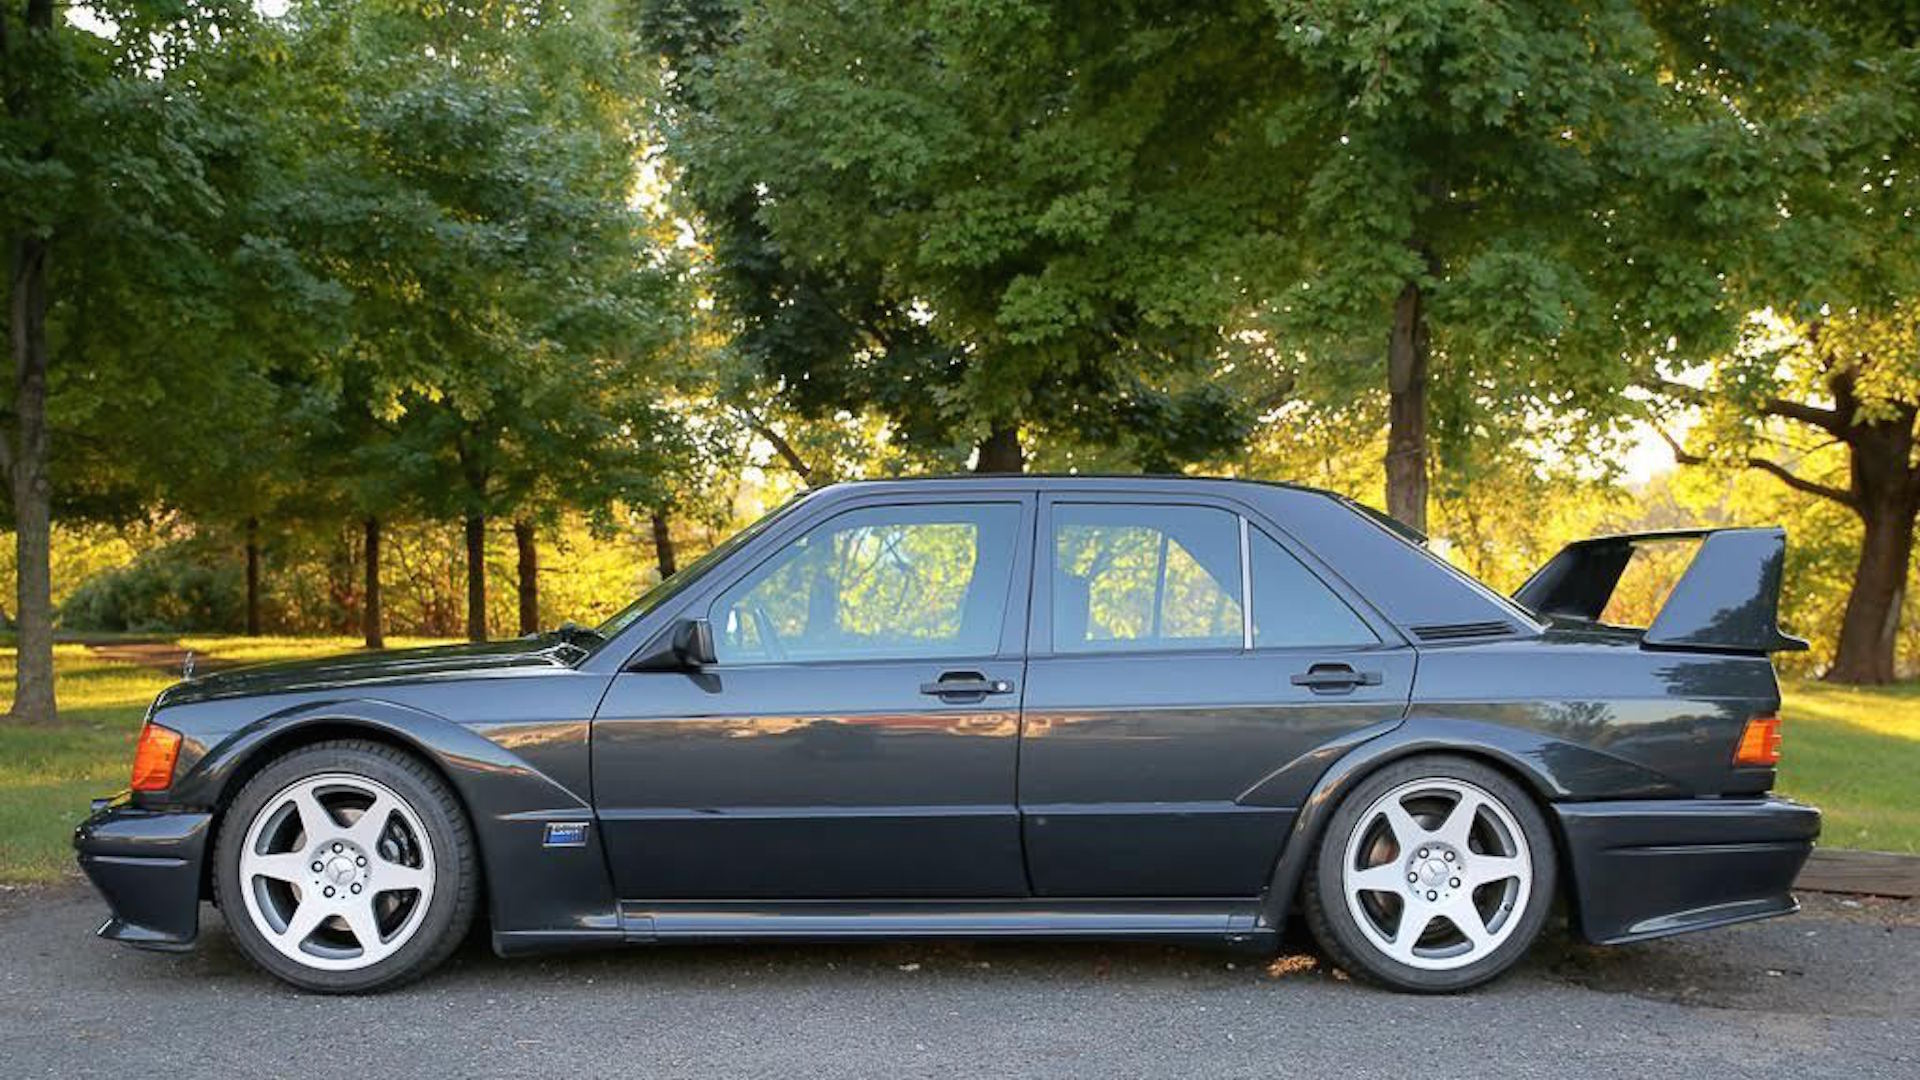 1990 mercedes benz 190e cosworth evo ii on ebay with for Mercedes benz 190 for sale